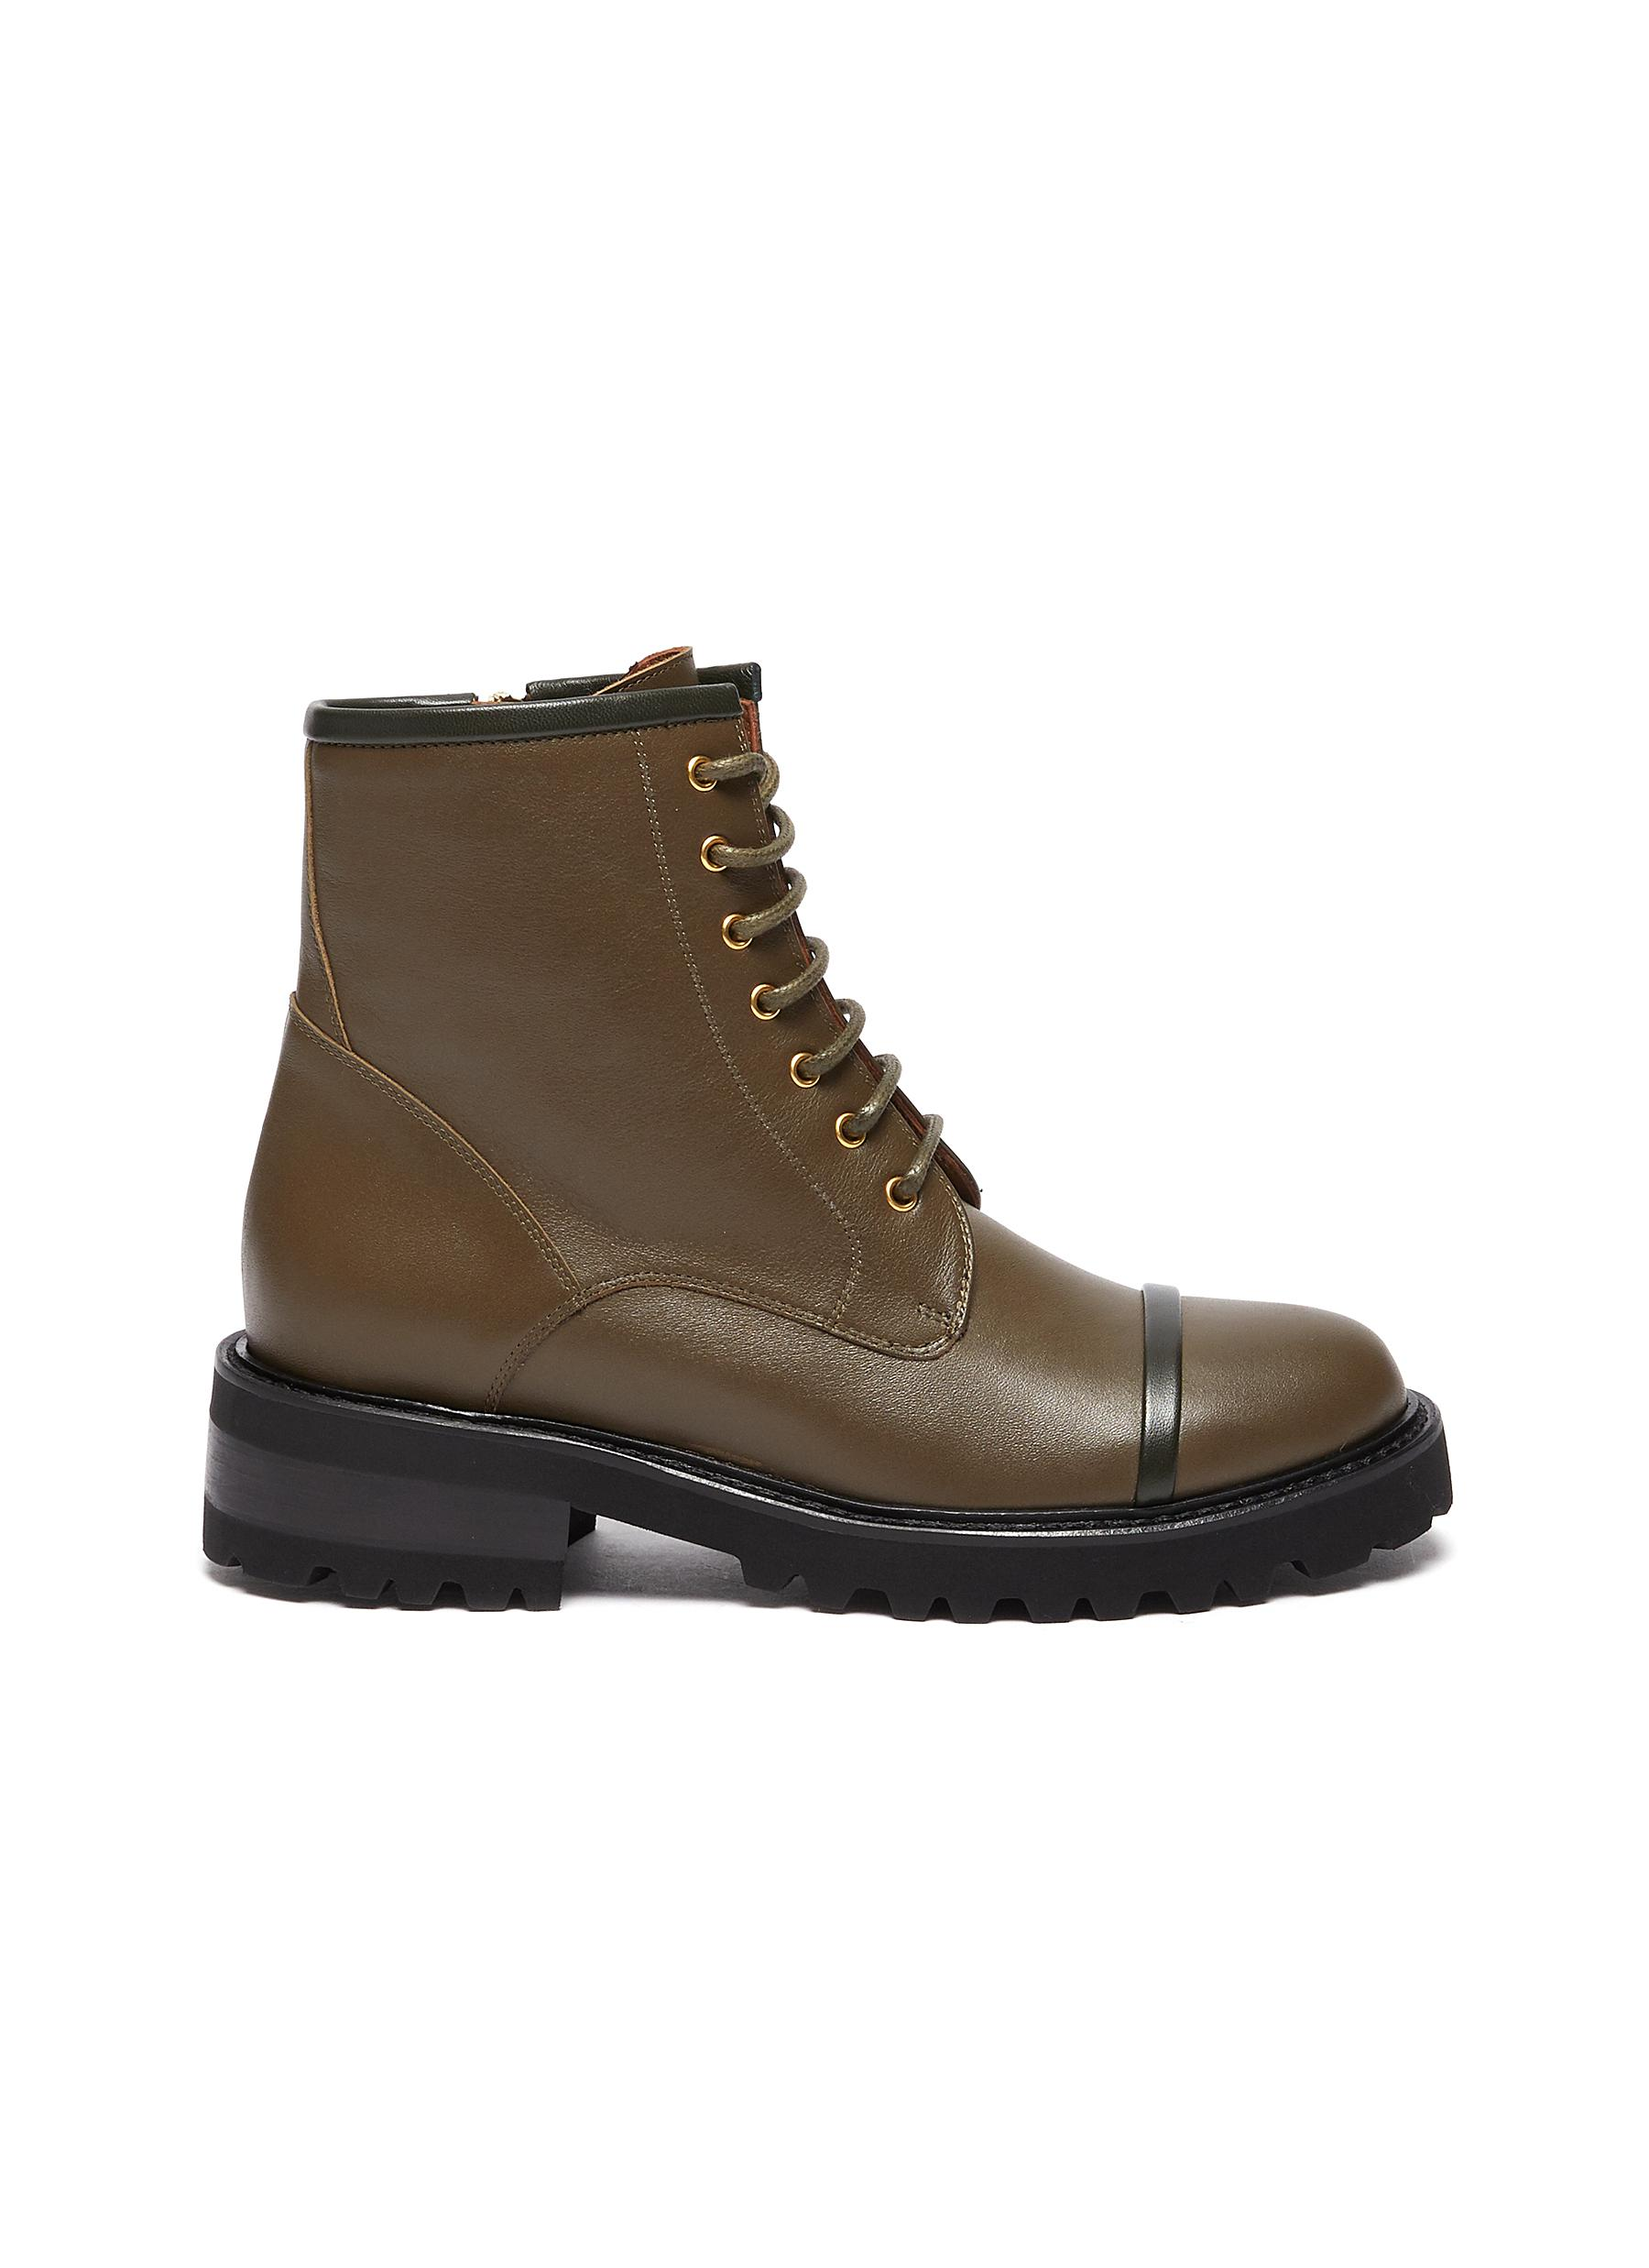 Malone Souliers 'BRYCE' COMBAT BOOTS